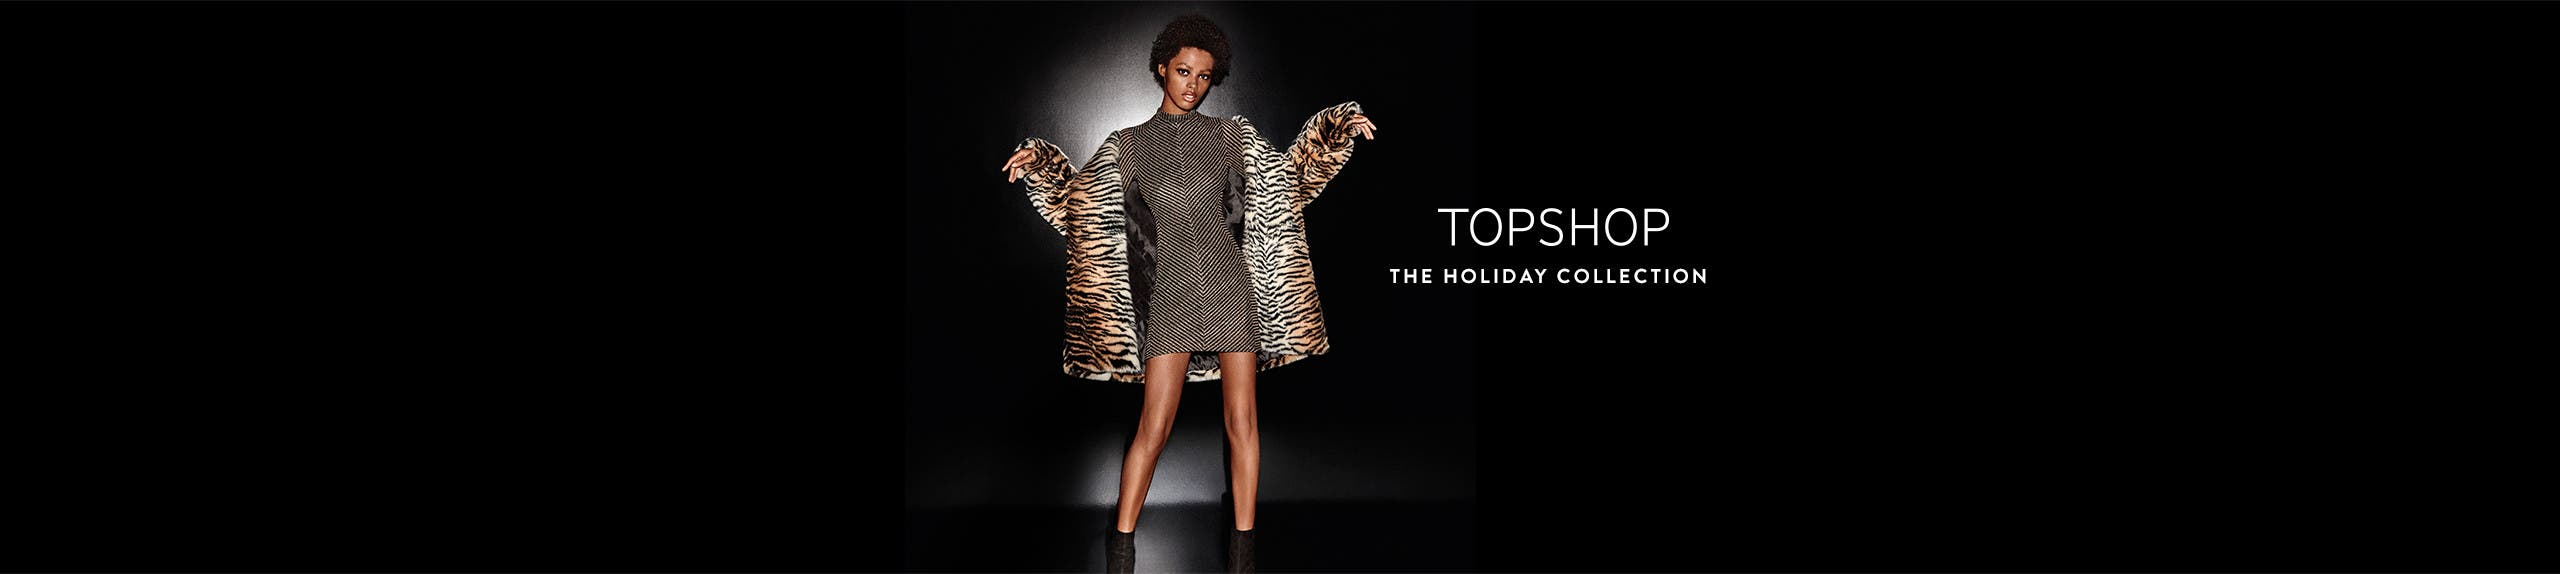 Topshop: the holiday collection.